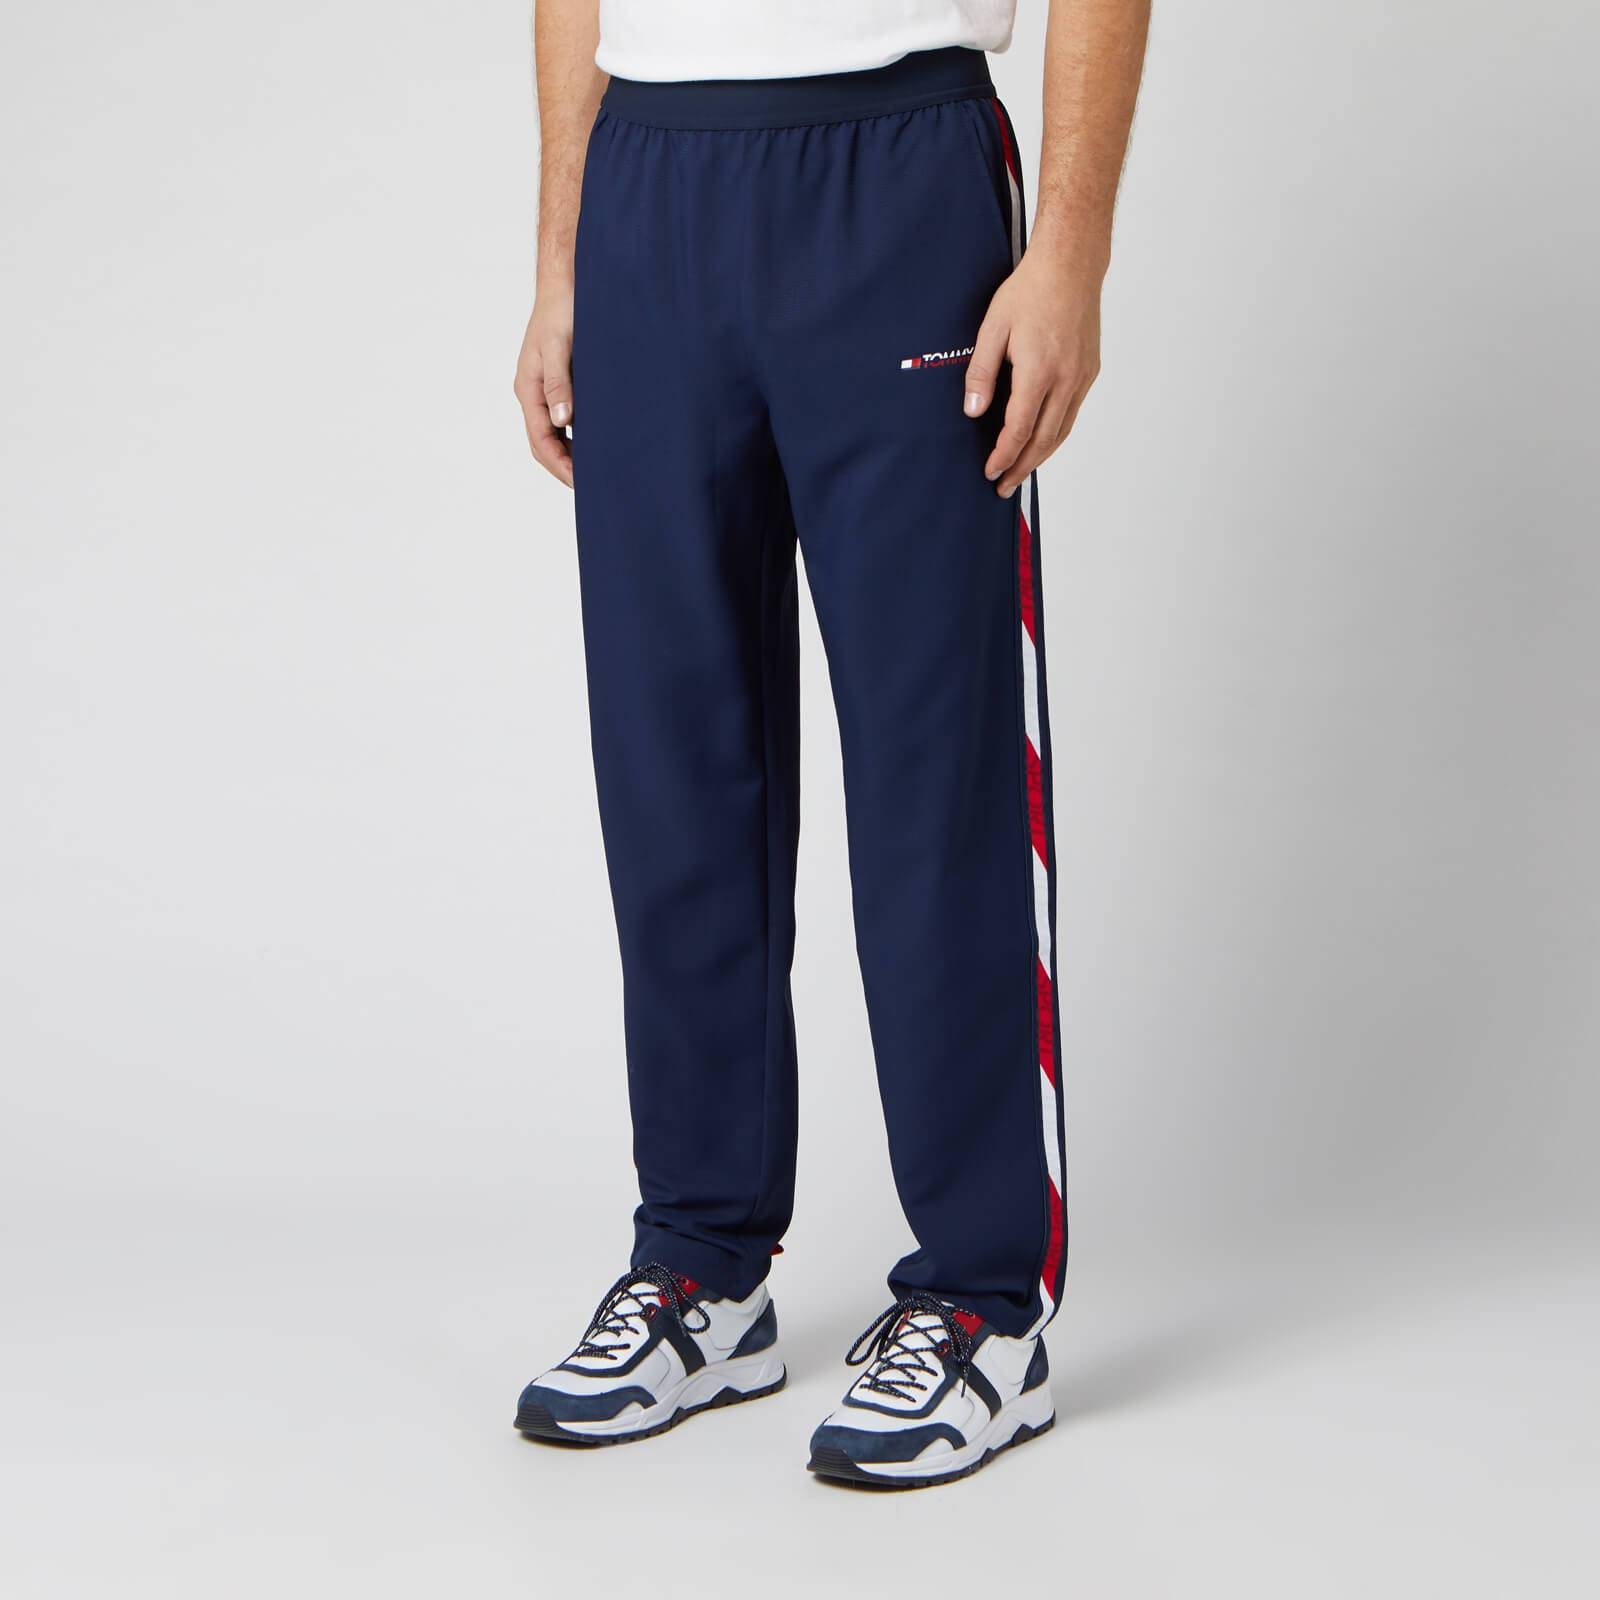 Tommy Sport Men's Woven Tape Pants - Sport Navy - L